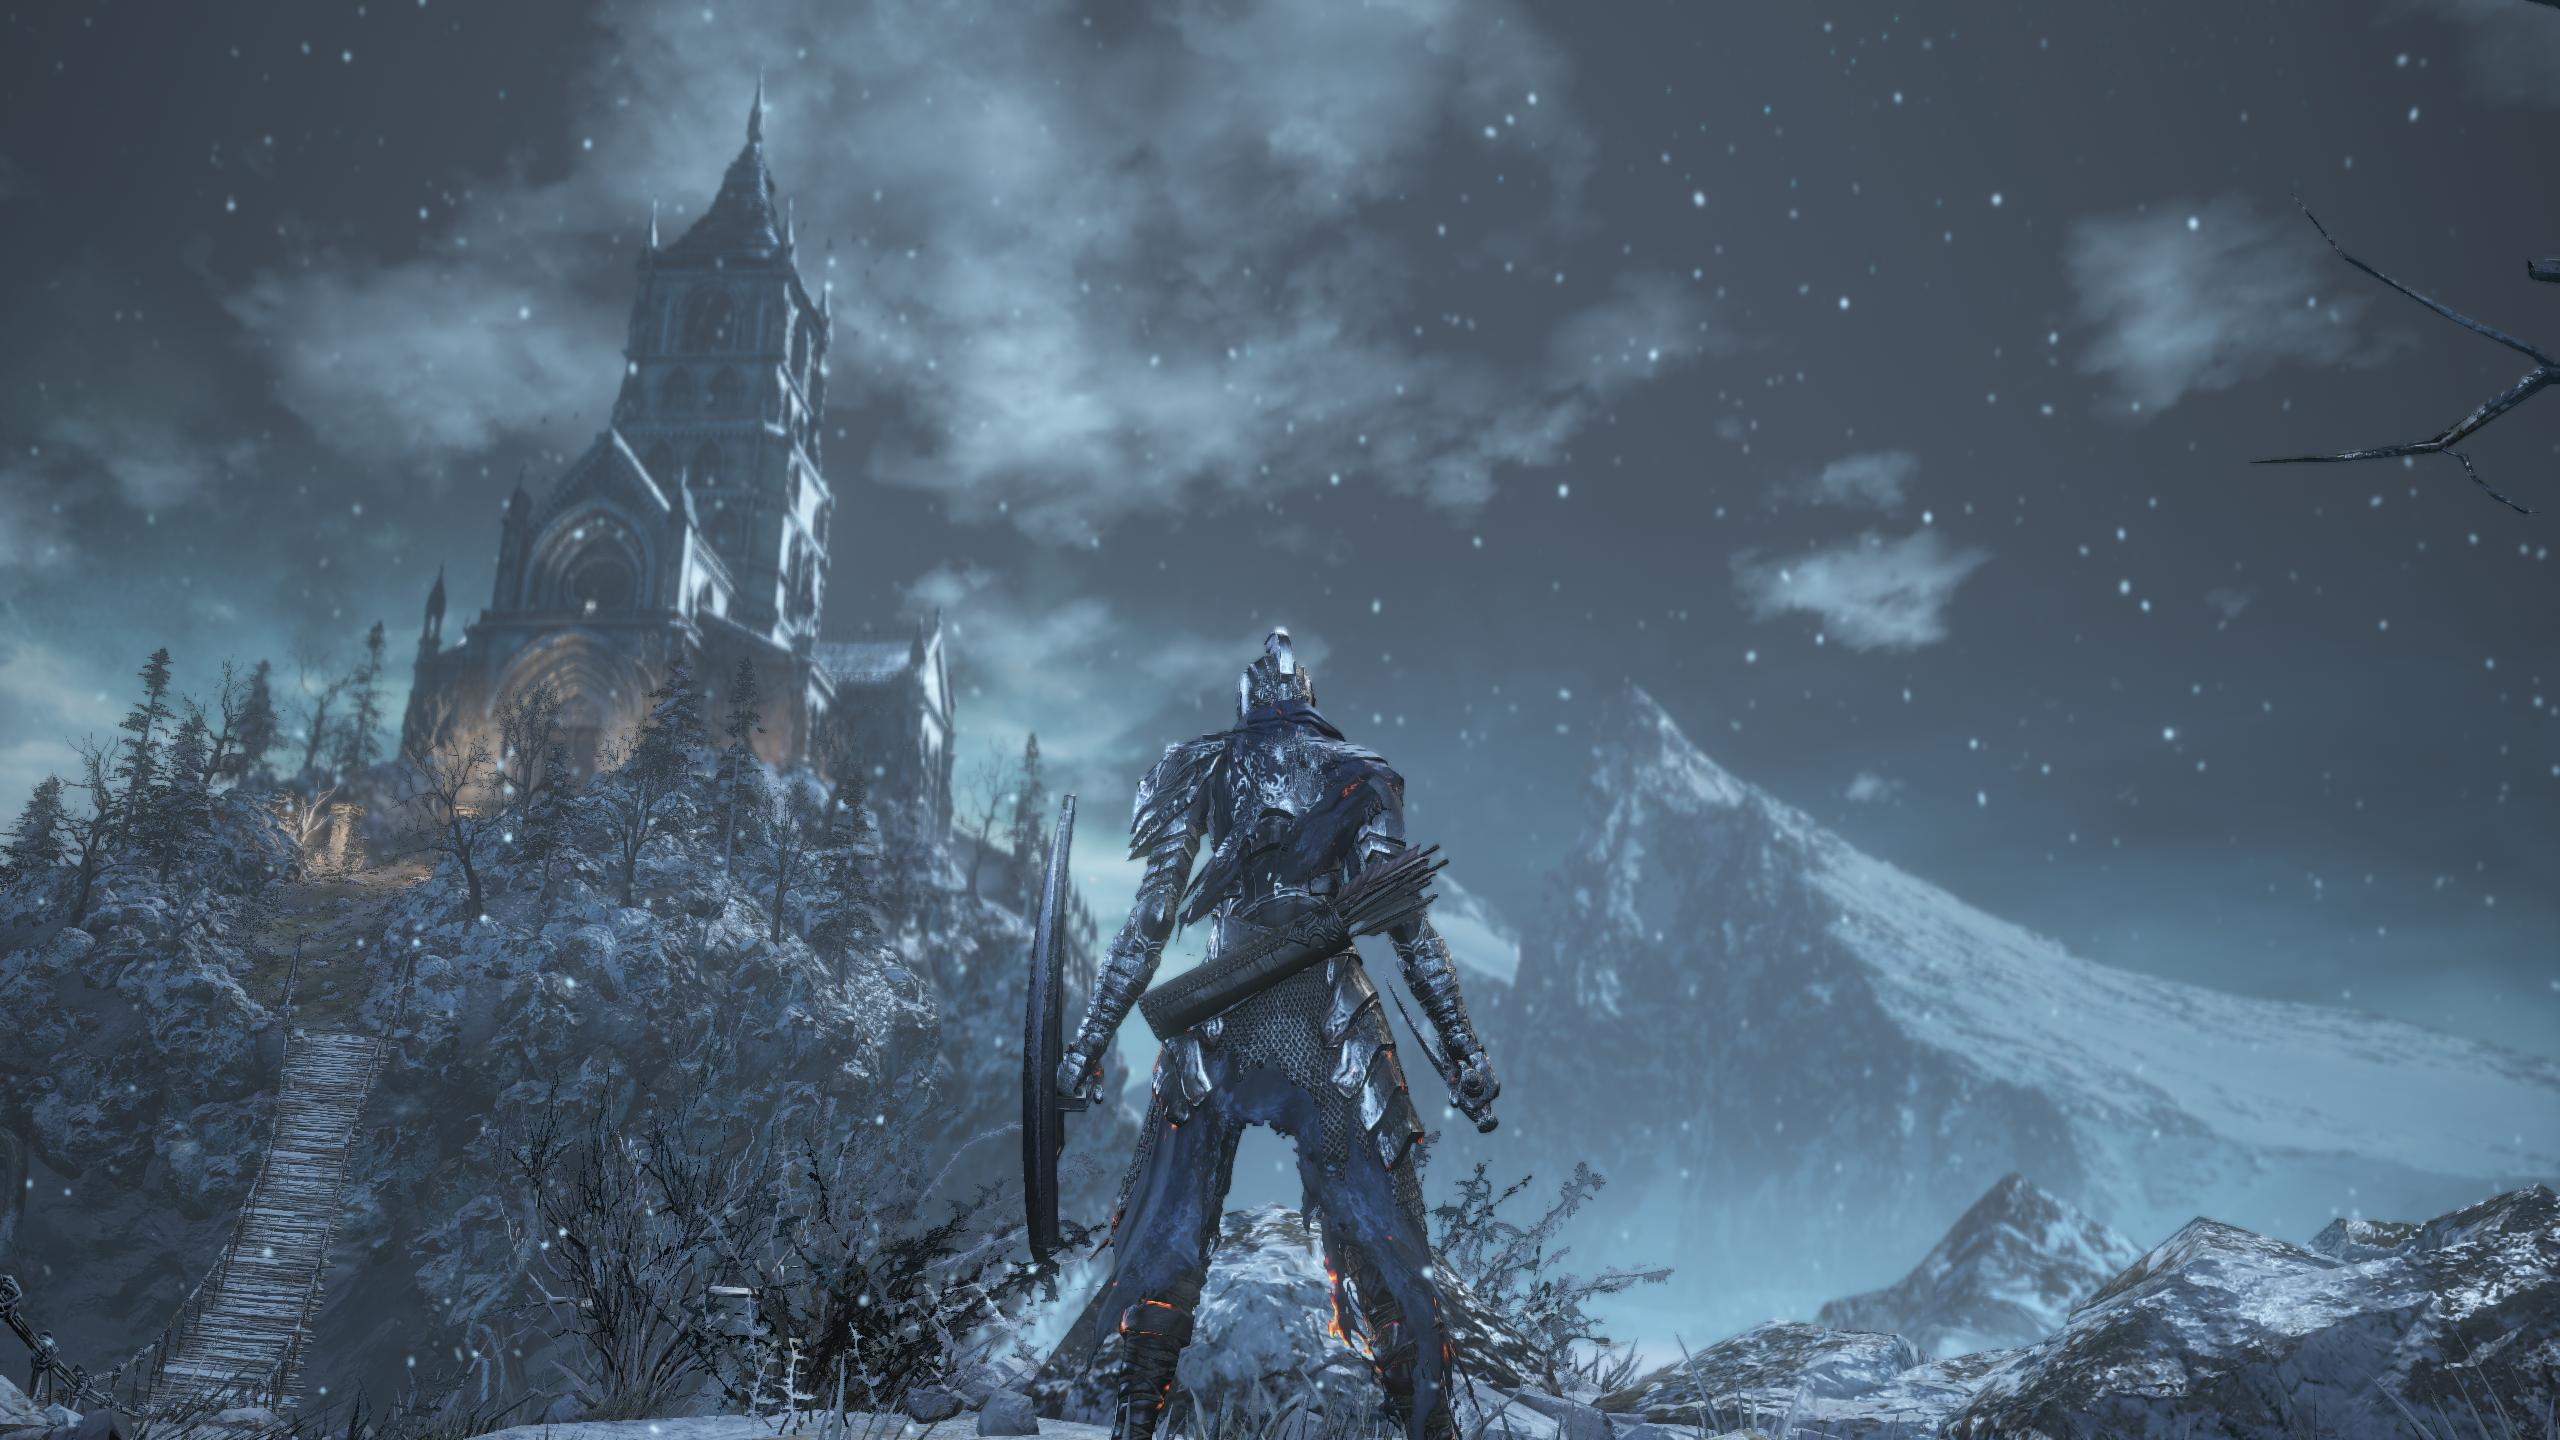 Dark Souls 3 Ashes of Ariandel DLC snow view